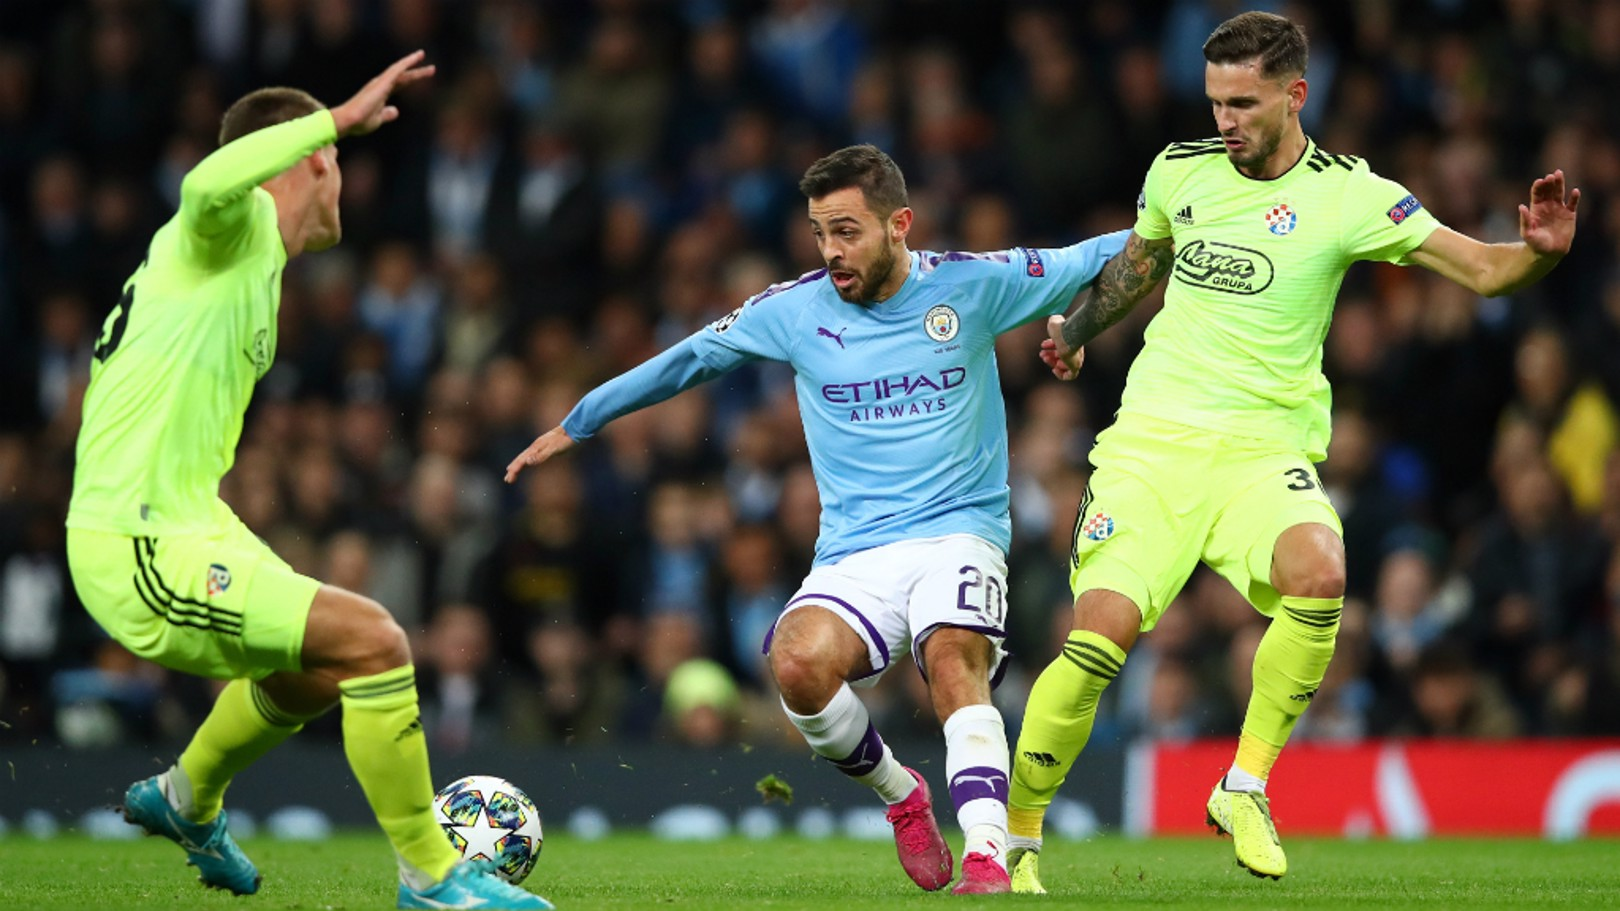 DOUBLE TROUBLE: Bernardo Silva takes on two opponents in the first half